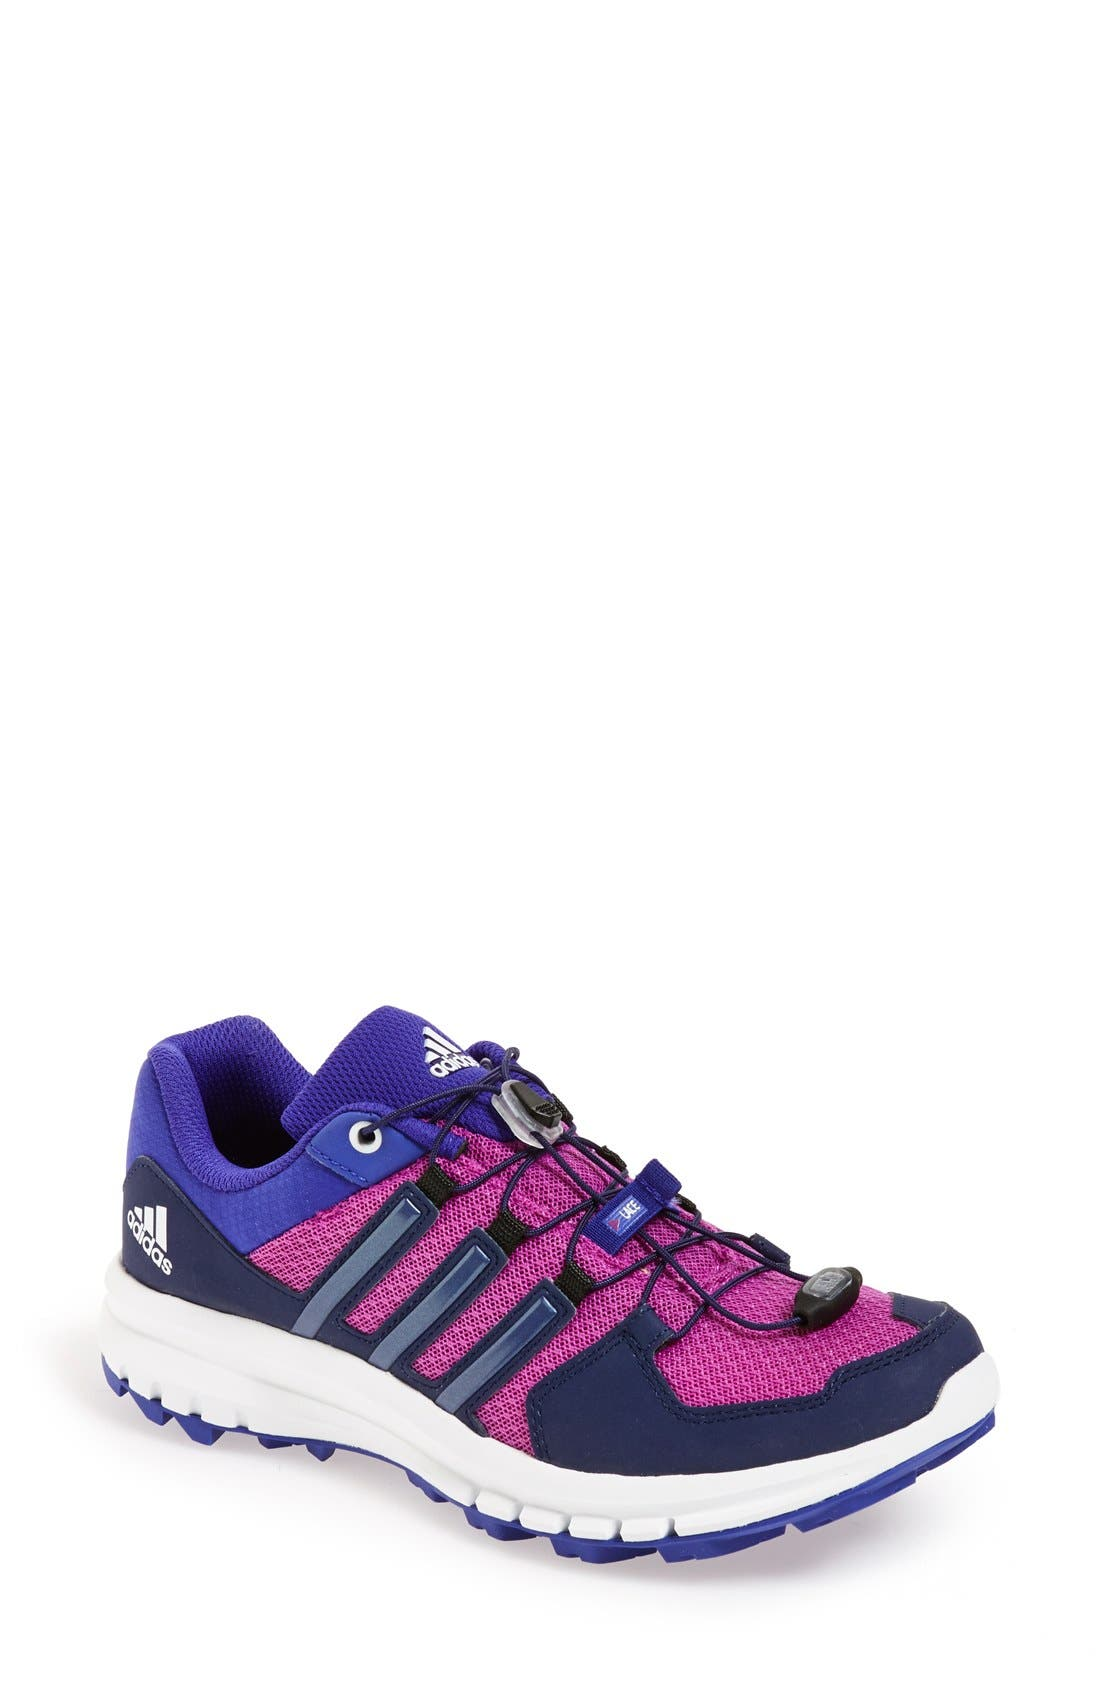 Main Image - adidas 'Duramo Cross Trail' Running Shoe (Women)